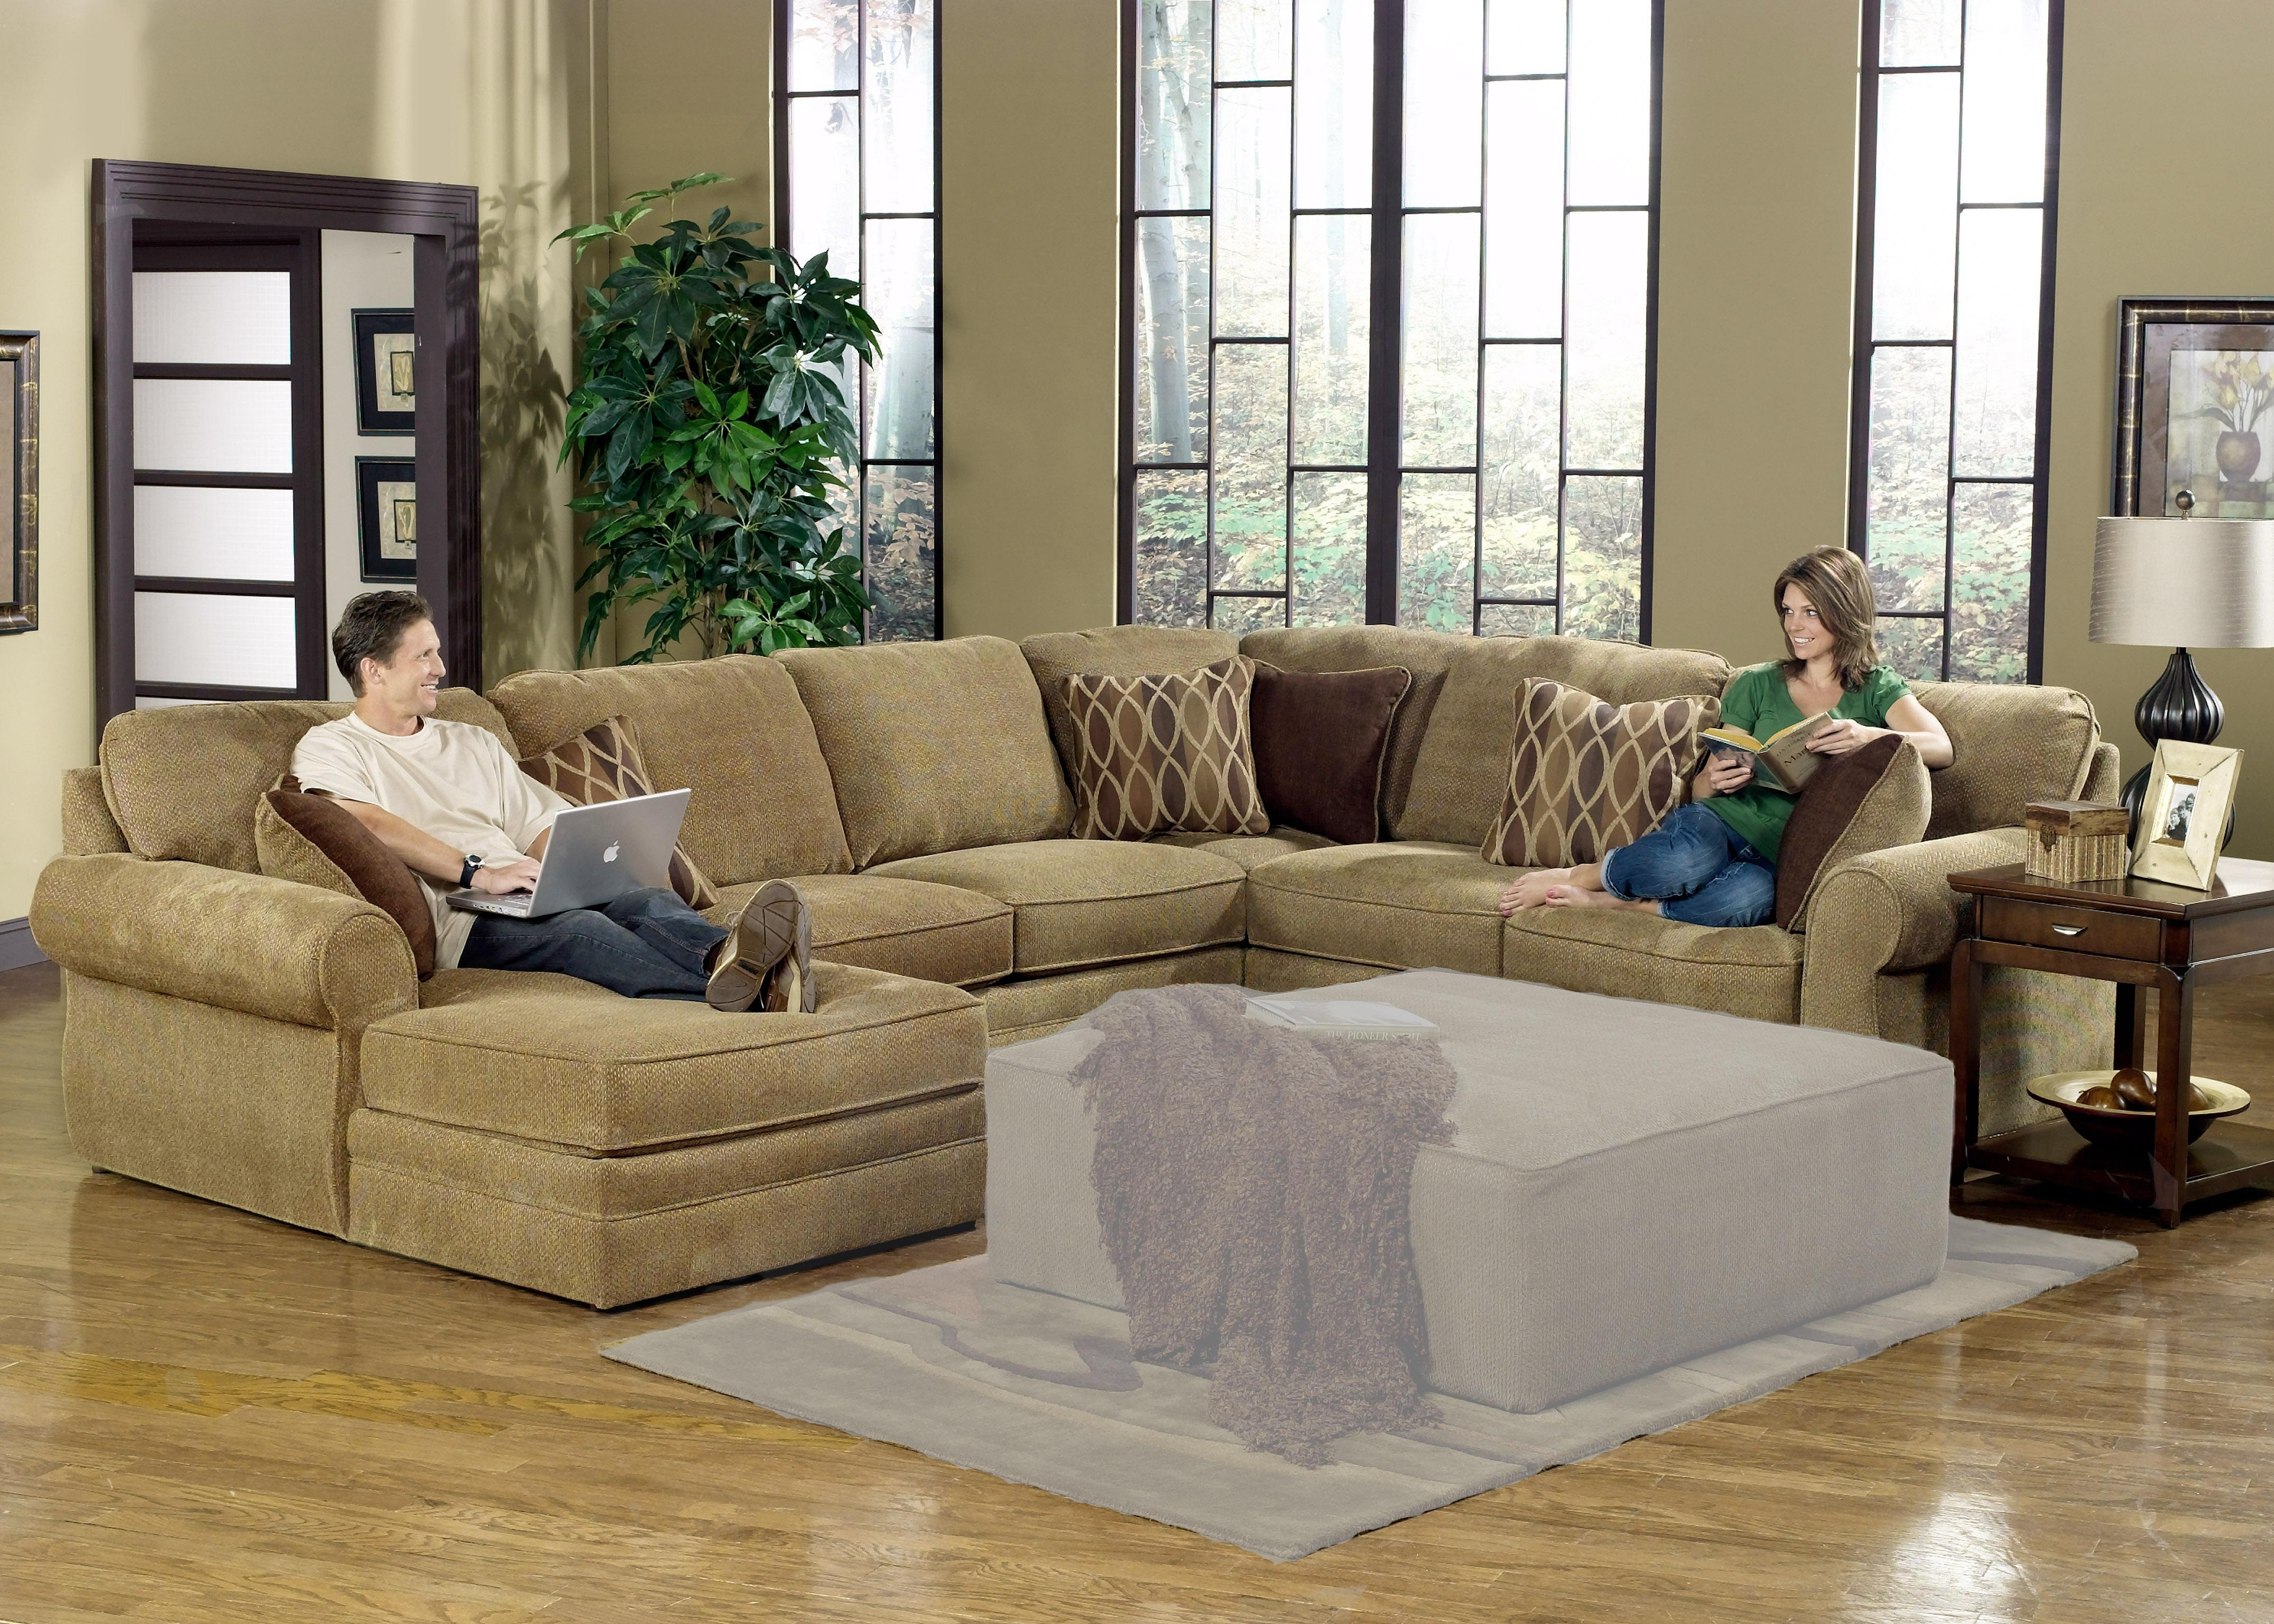 Modern Style U Shaped Sectional Sofa With Home Living Room Sofas And Within Modern U Shaped Sectional Sofas (View 2 of 10)